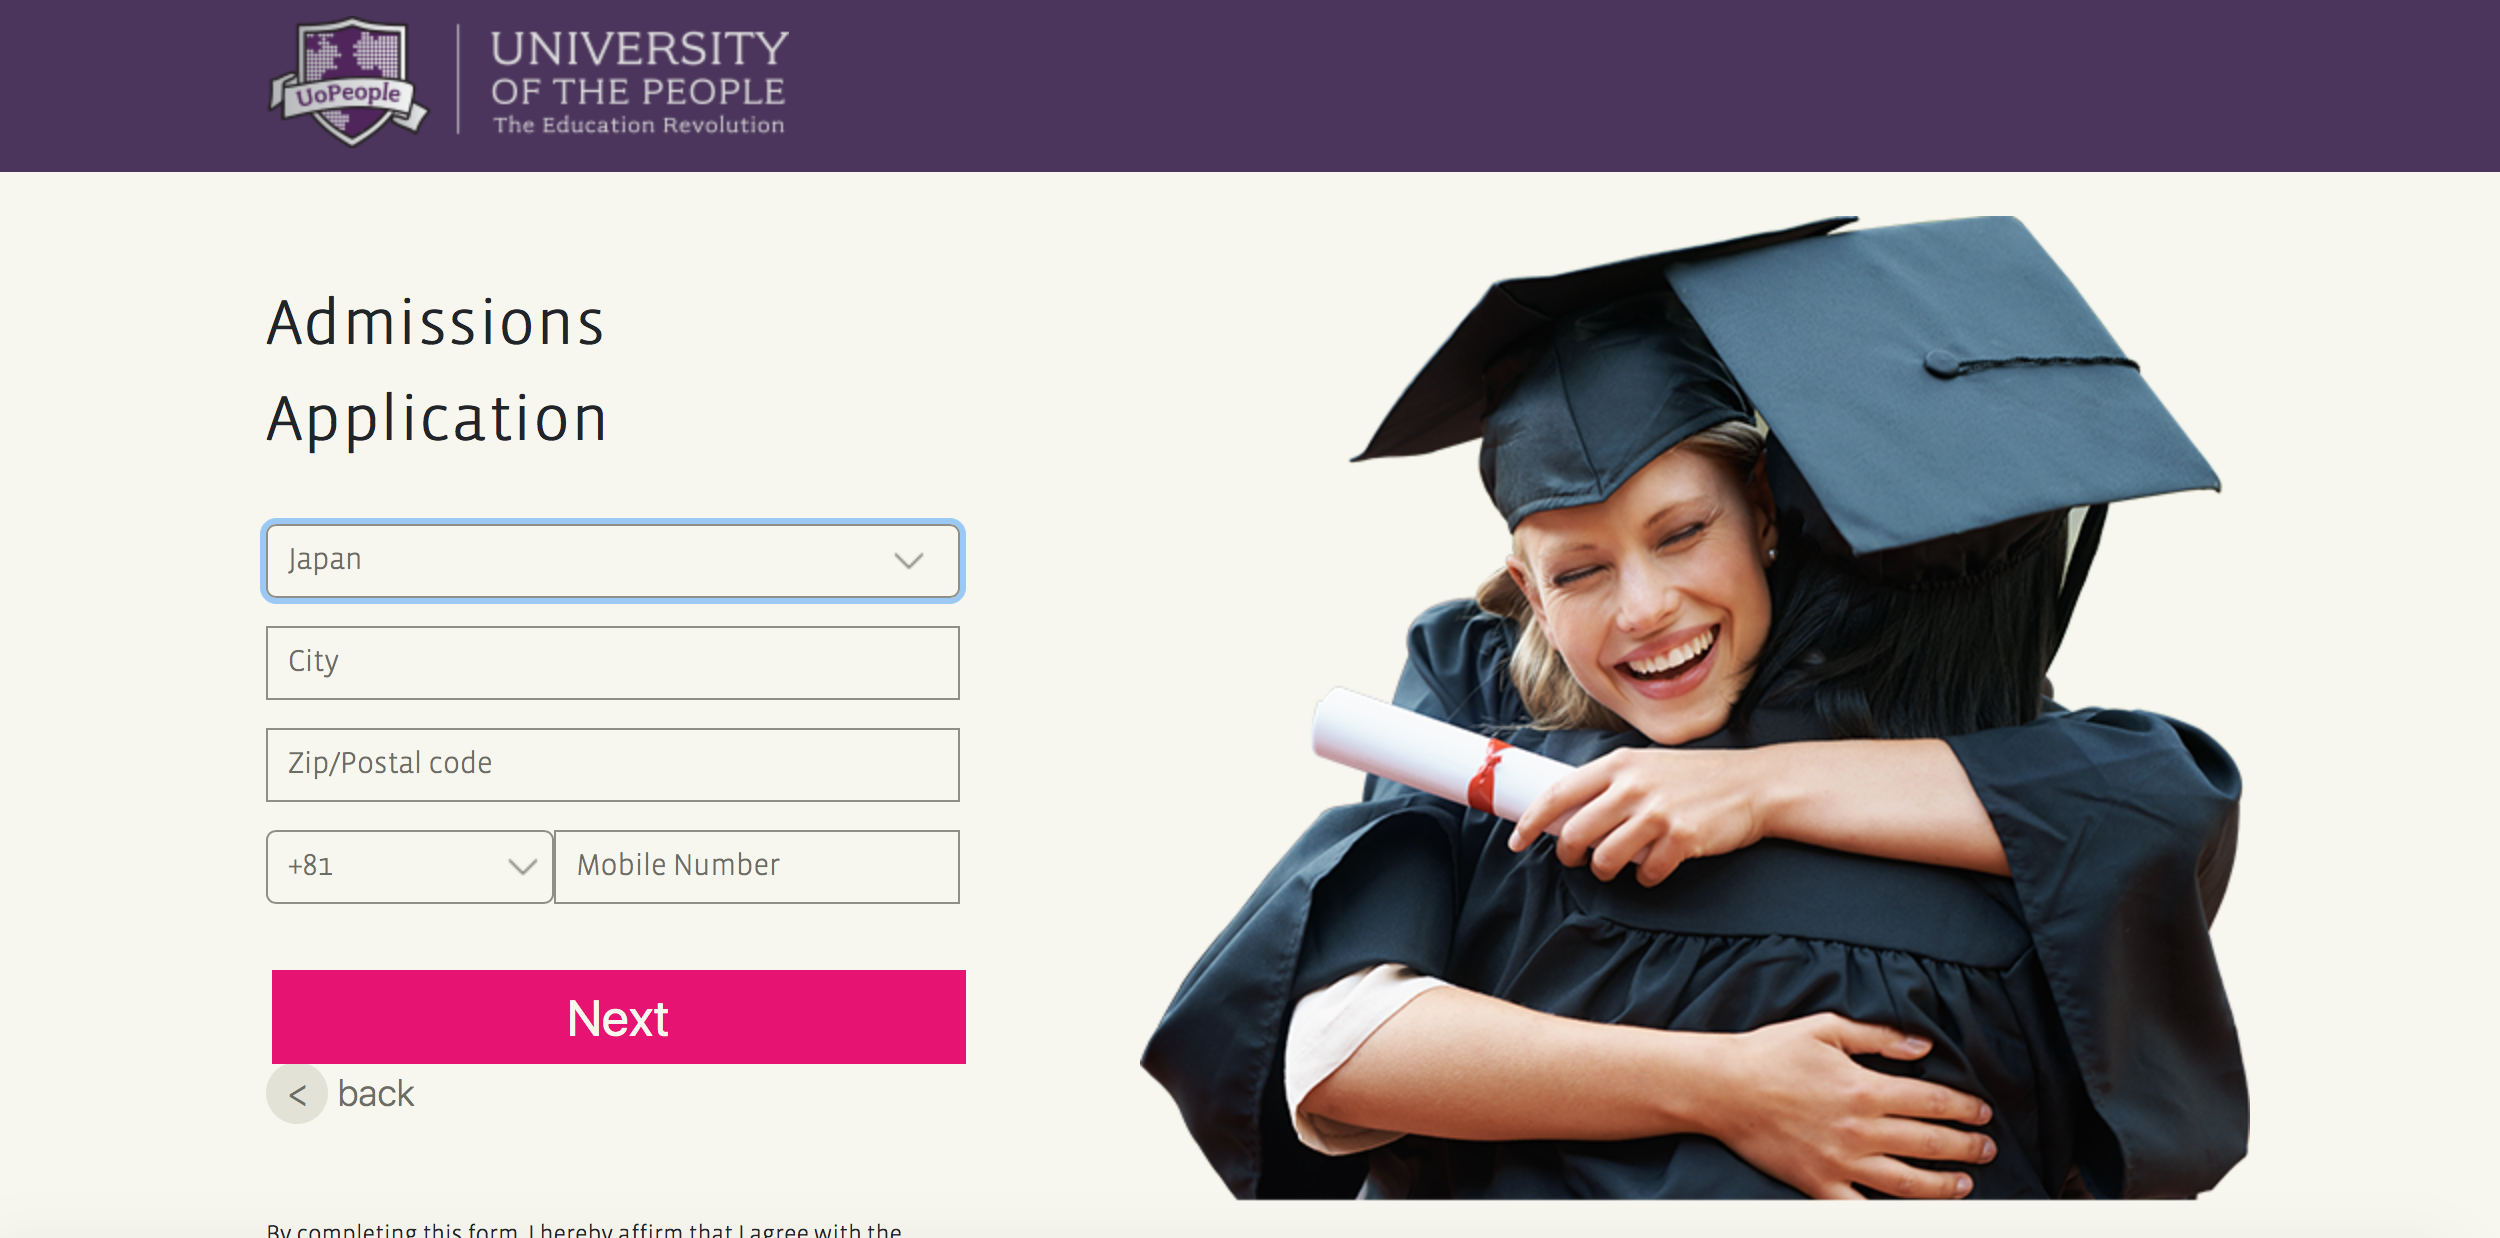 Admission Application for University of the People